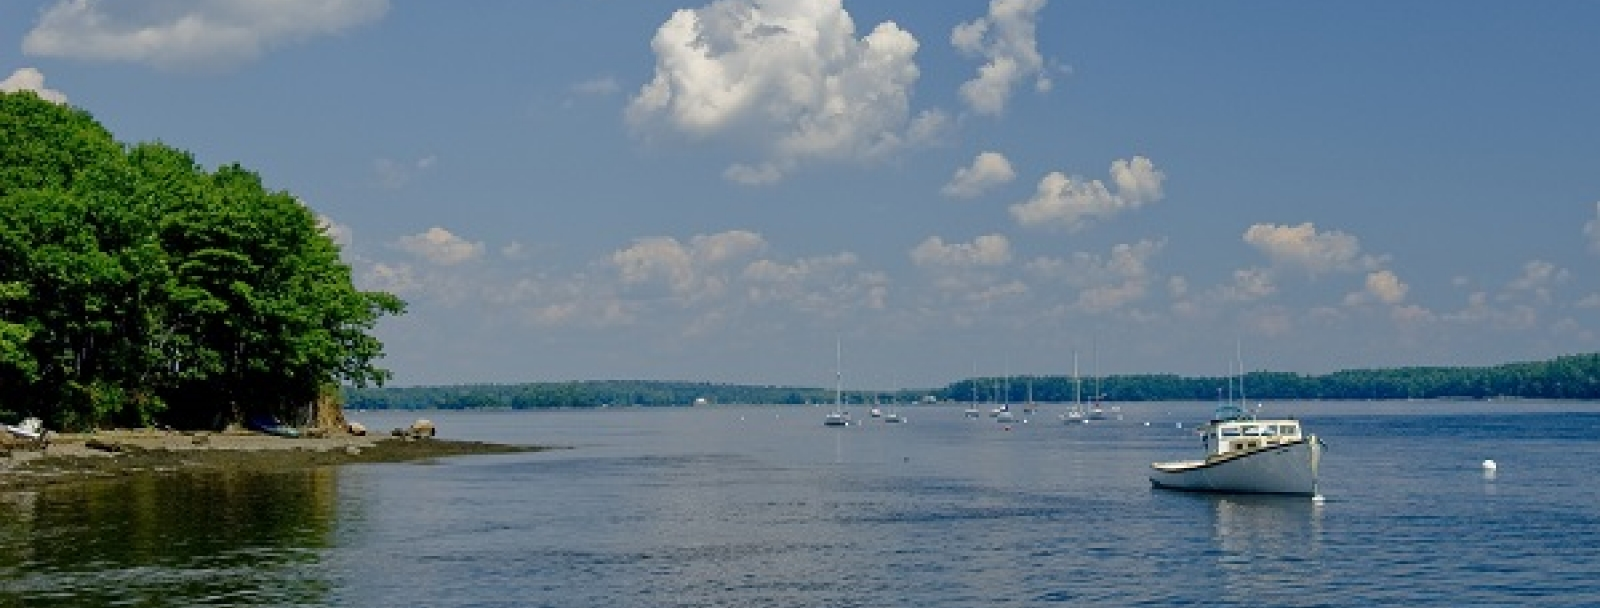 boats on Great Bay